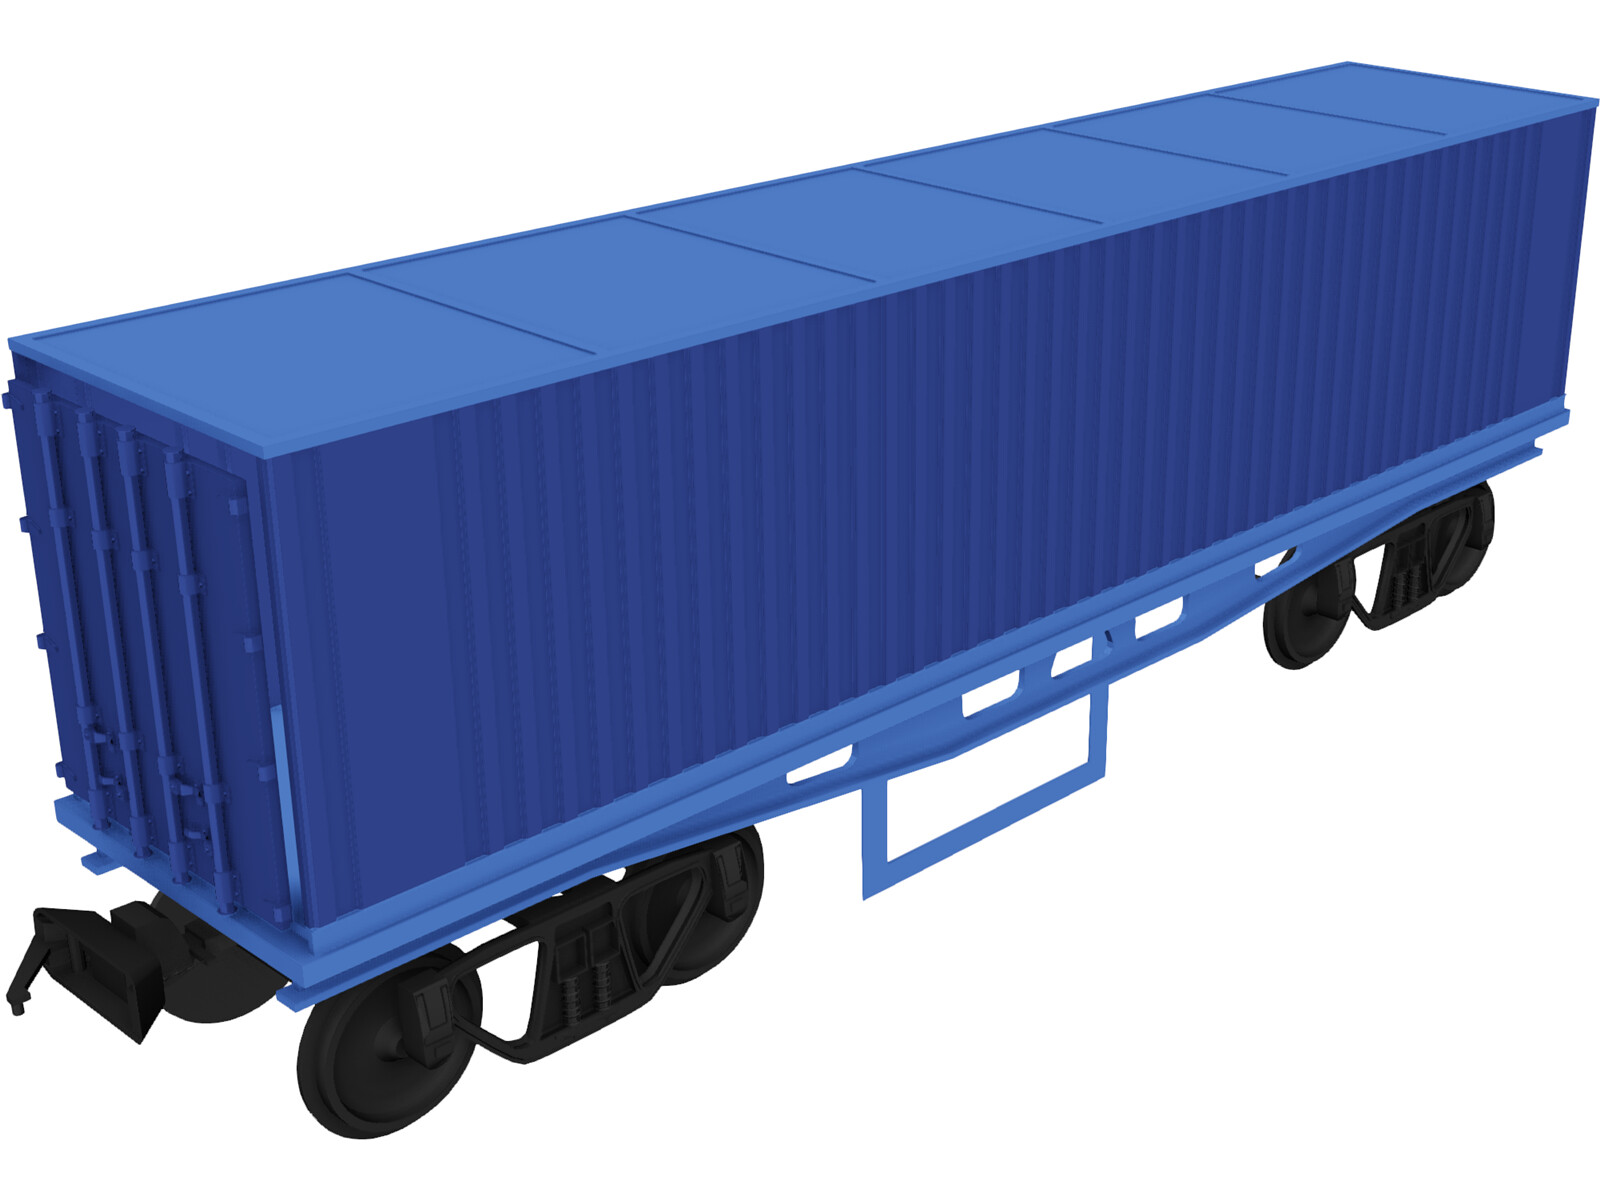 Container on Train truck